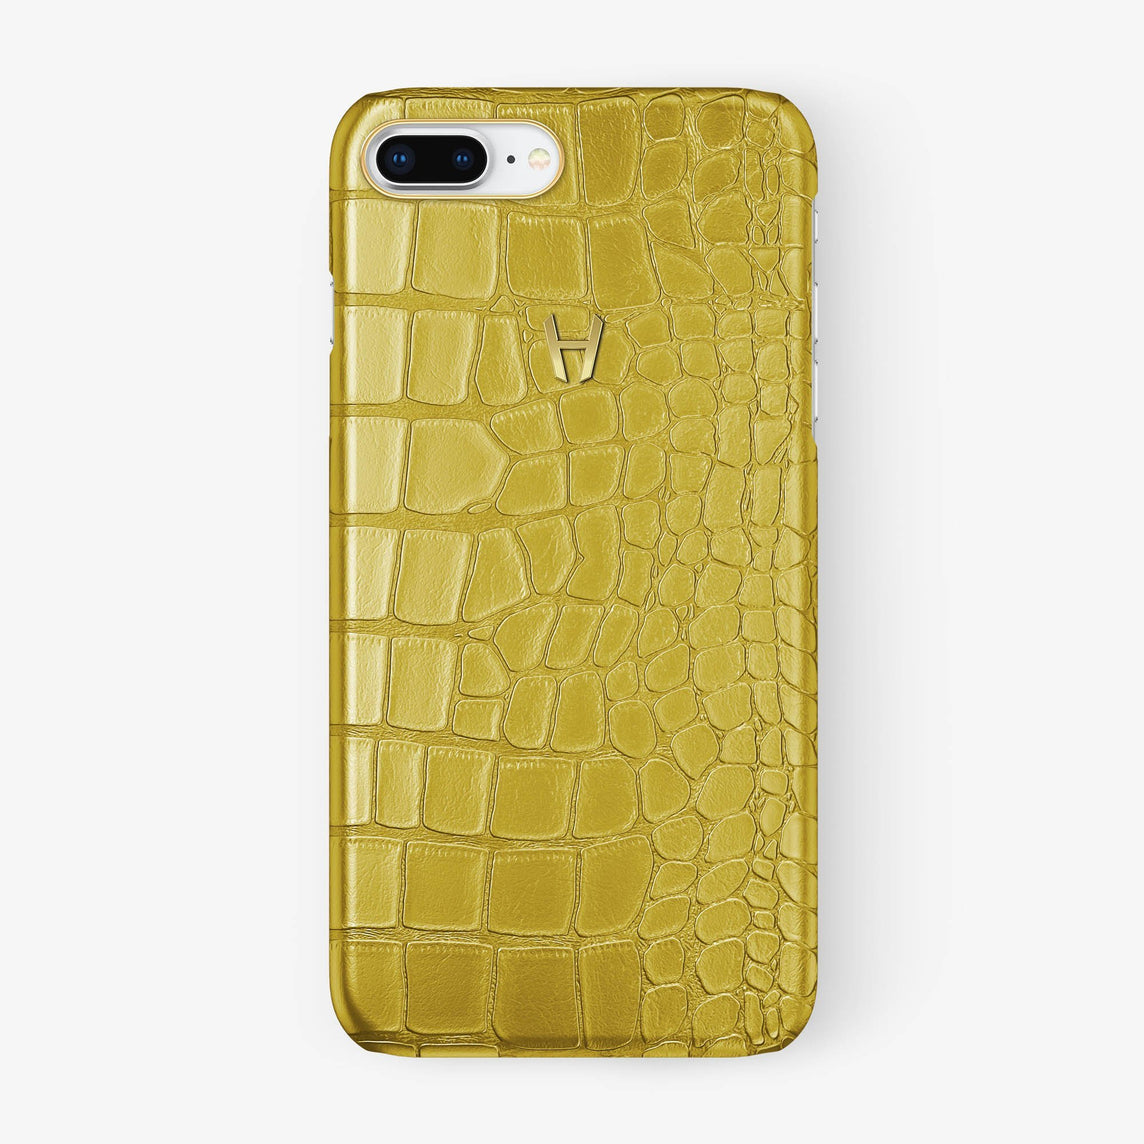 Alligator Case iPhone 7/8 Plus | Yellow - Yellow Gold - Hadoro